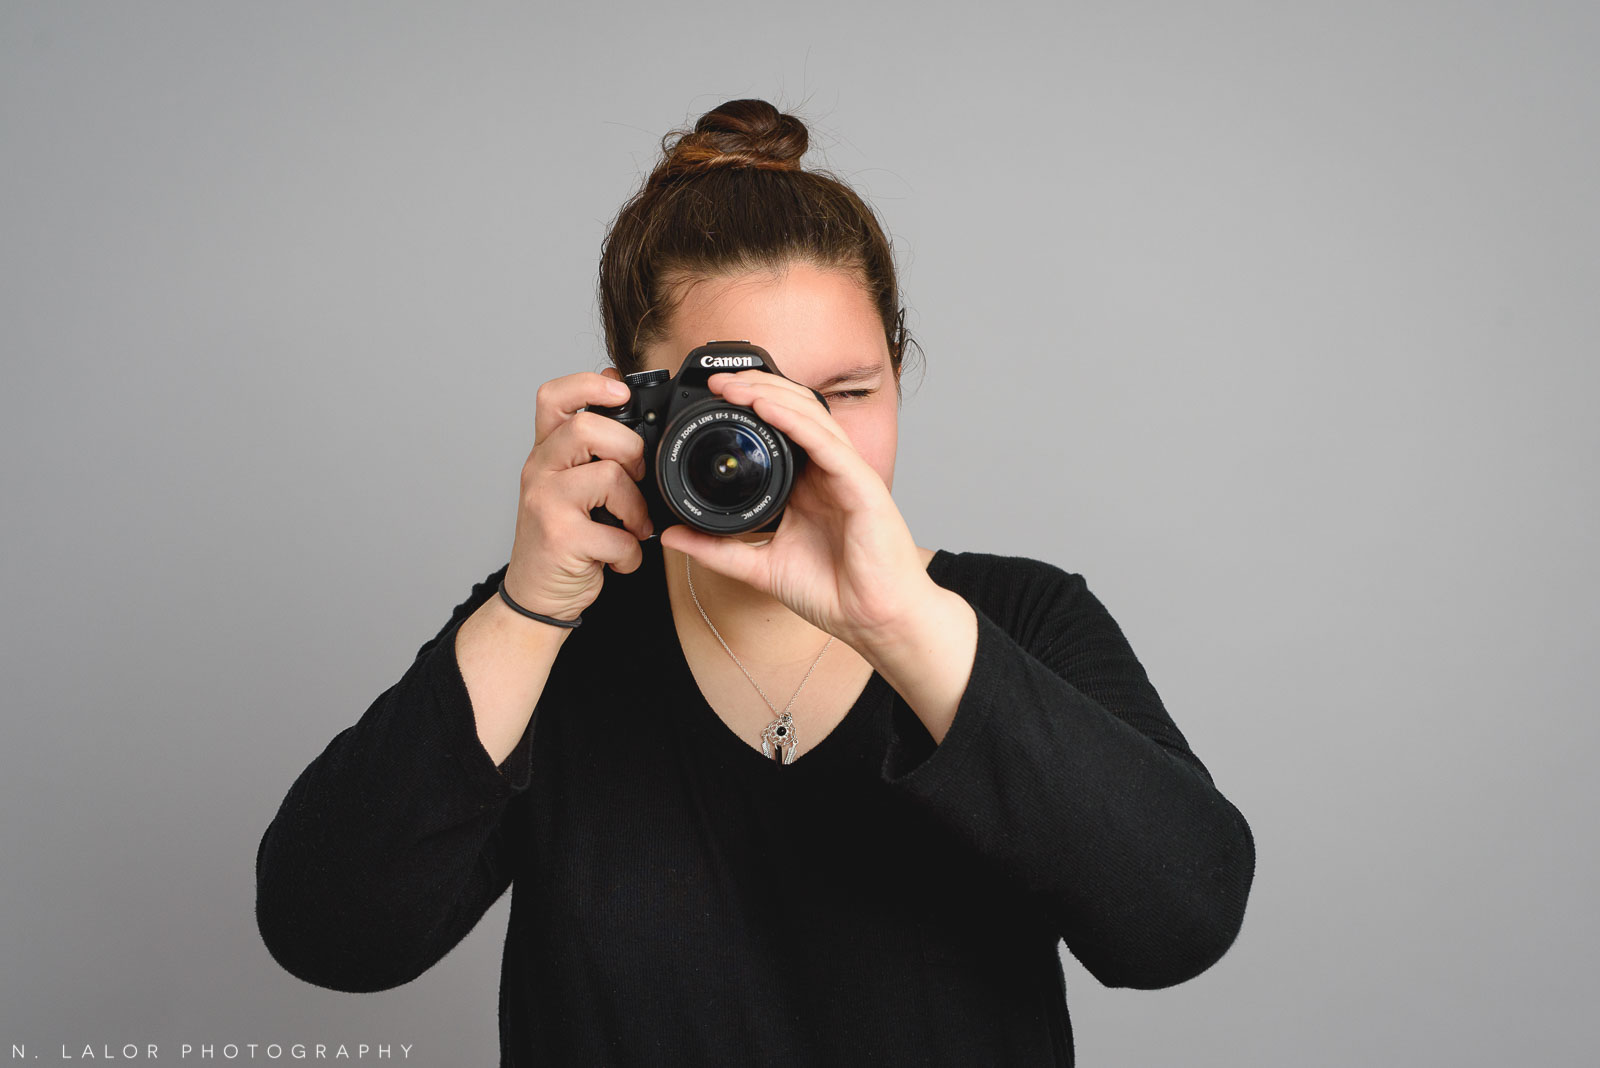 Sasha with her camera. Teen family photo session with N. Lalor Photography. Greenwich, Connecticut studio photographer.